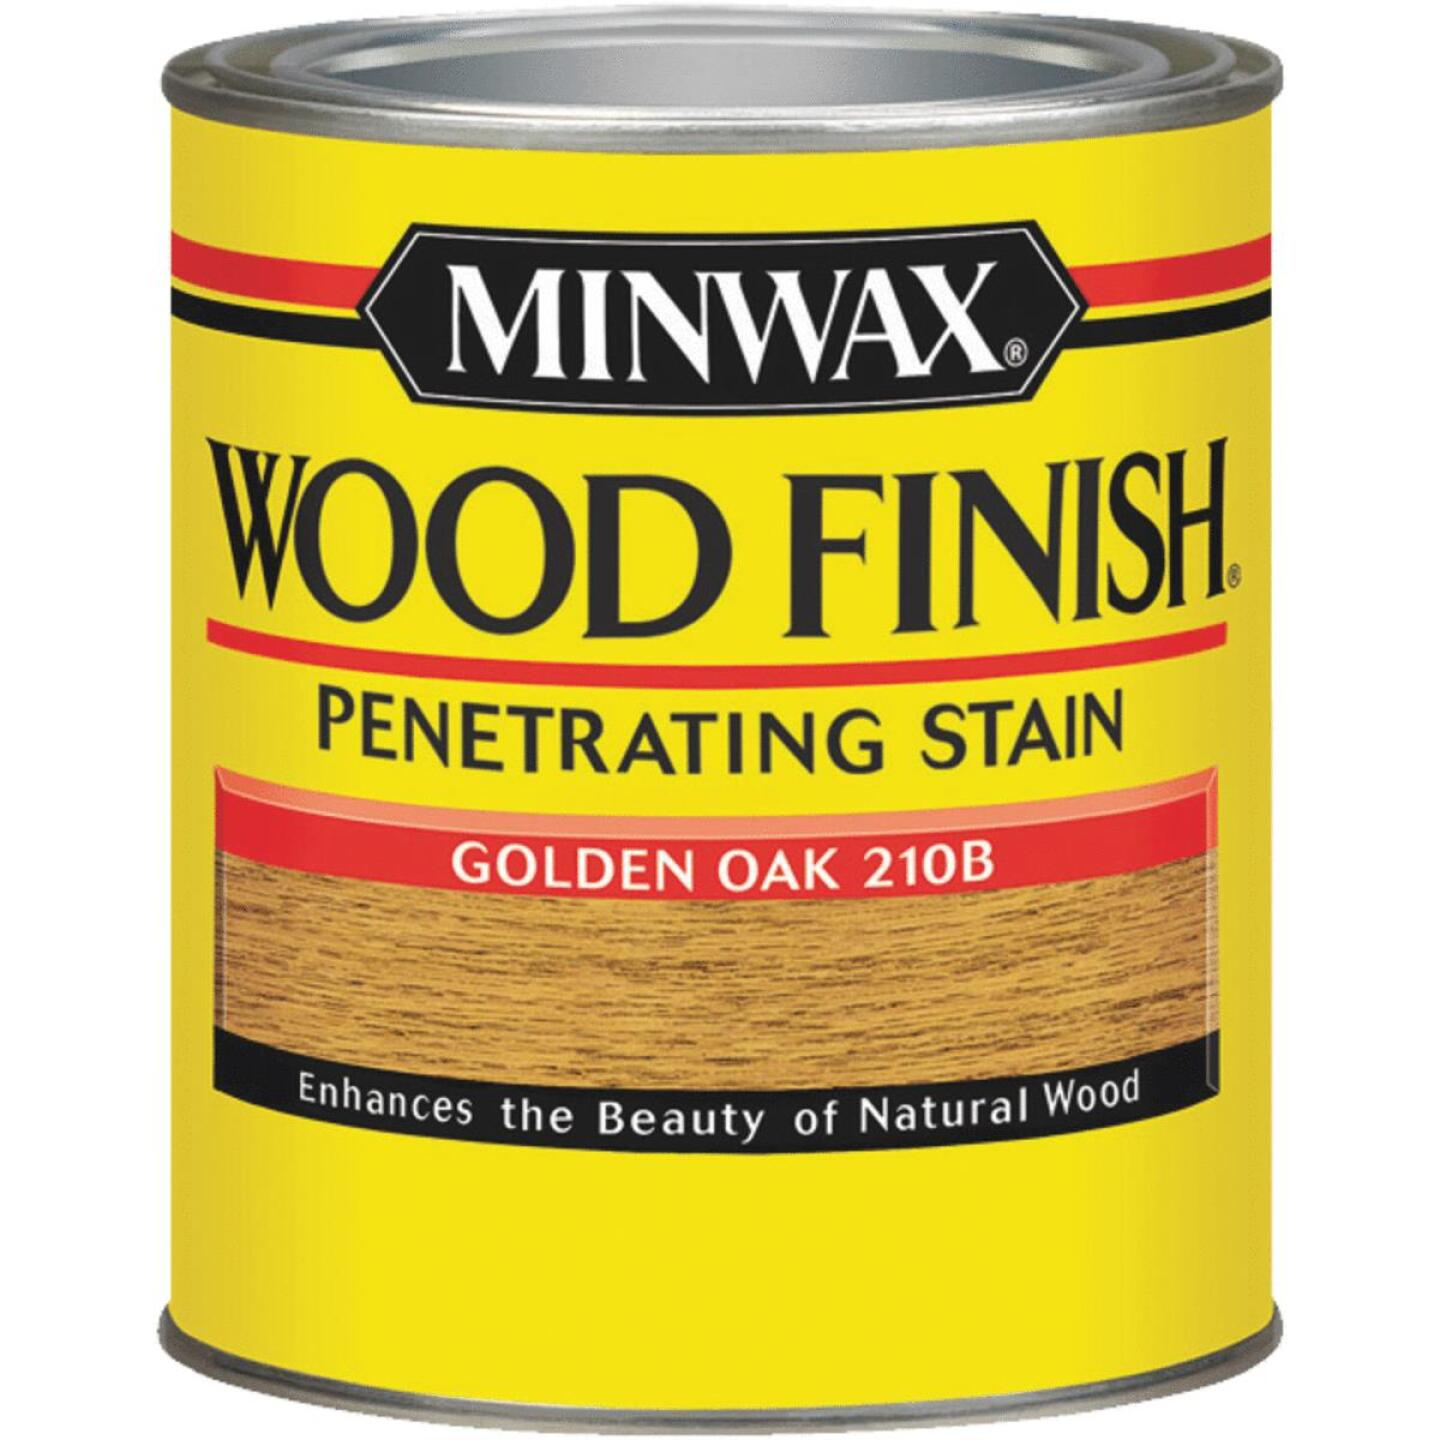 Minwax Wood Finish Penetrating Stain, Golden Oak, 1/2 Pt. Image 1